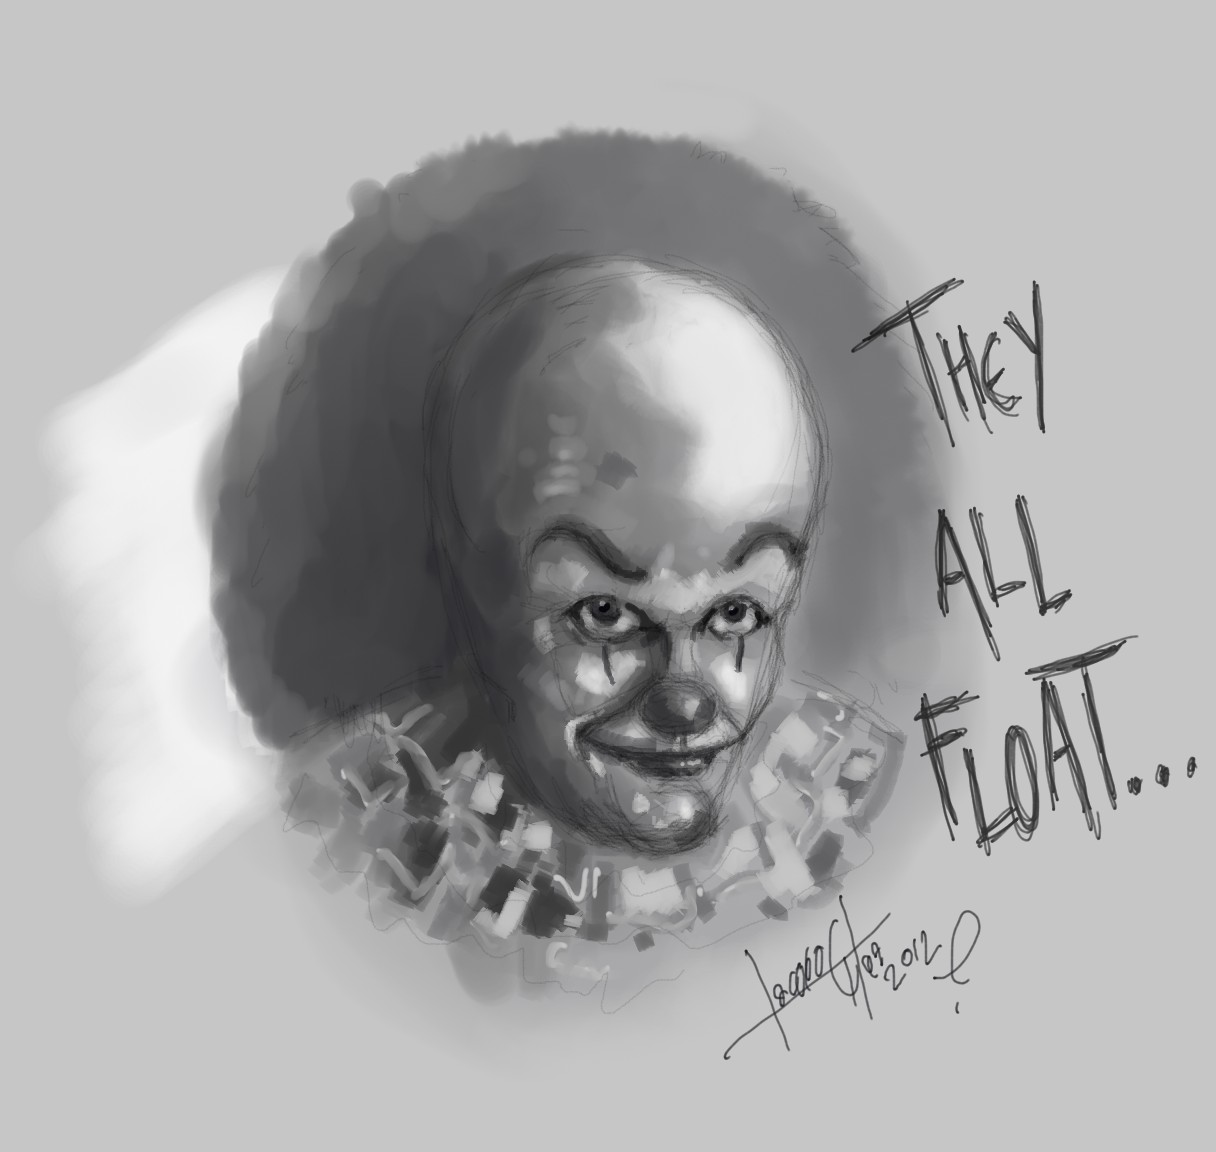 how to draw pennywise 1986